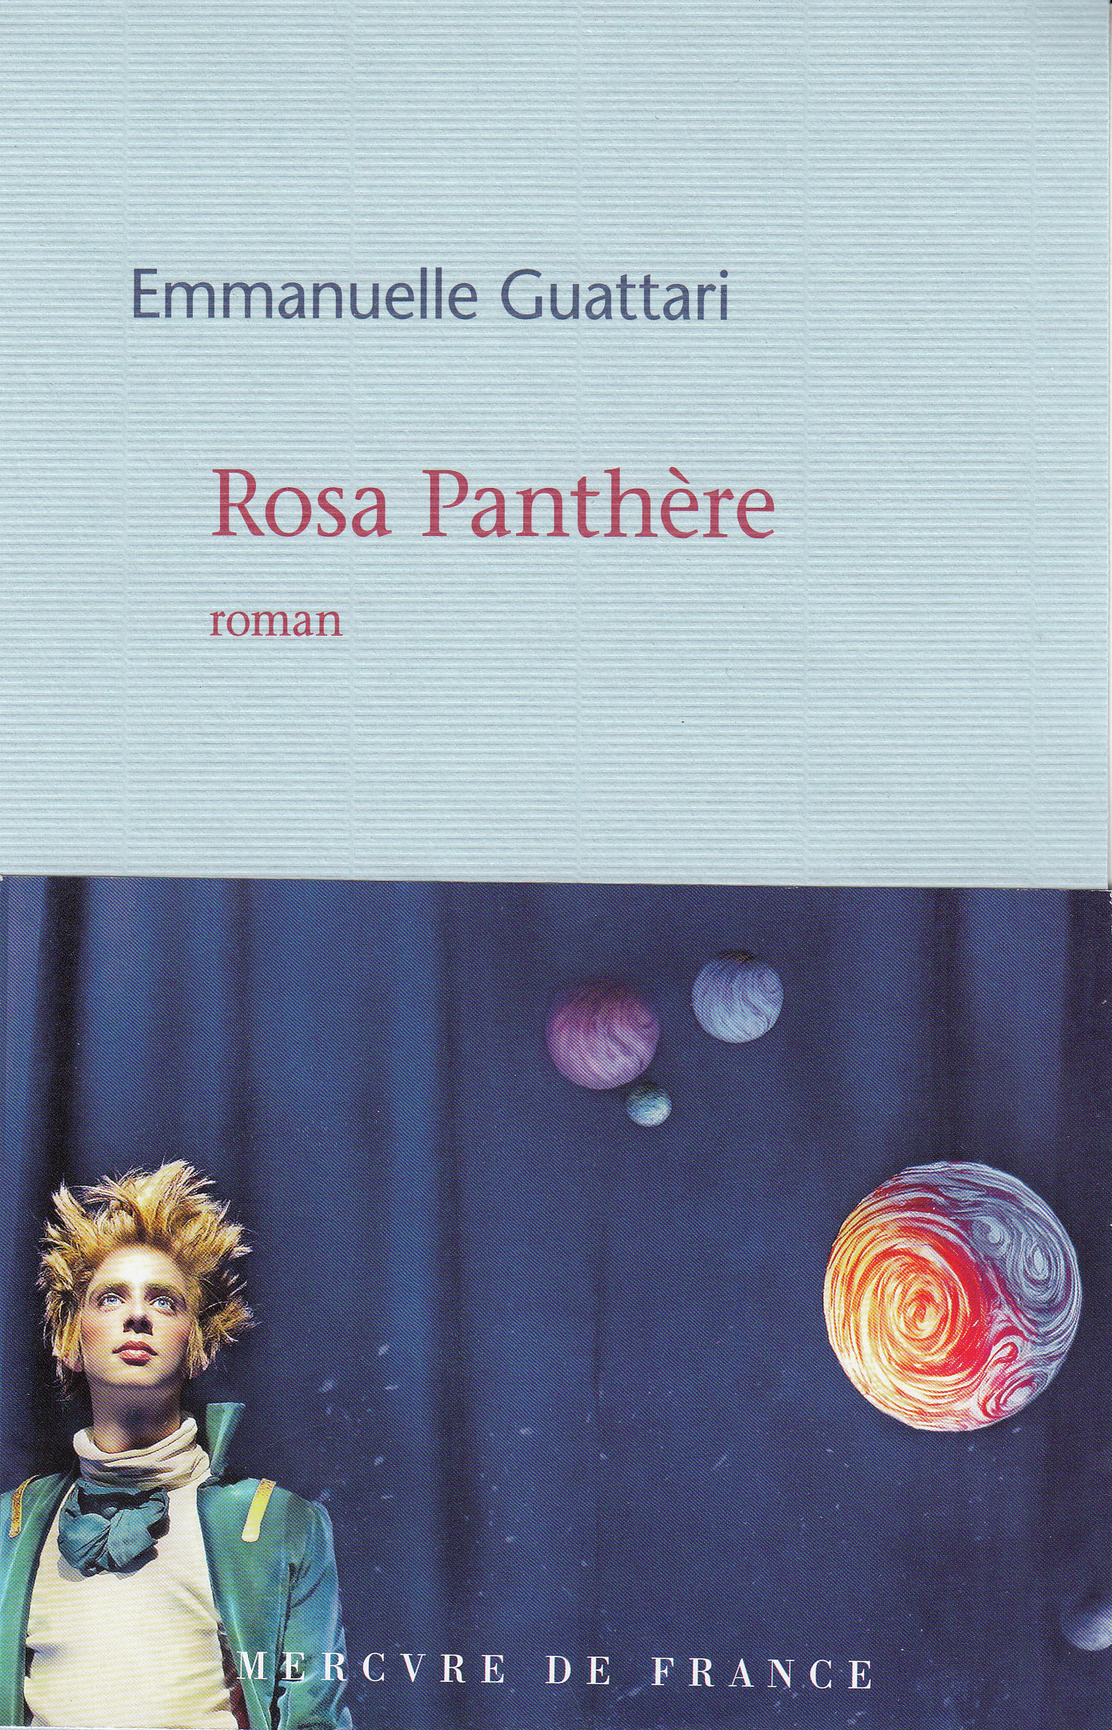 ROSA PANTHERE